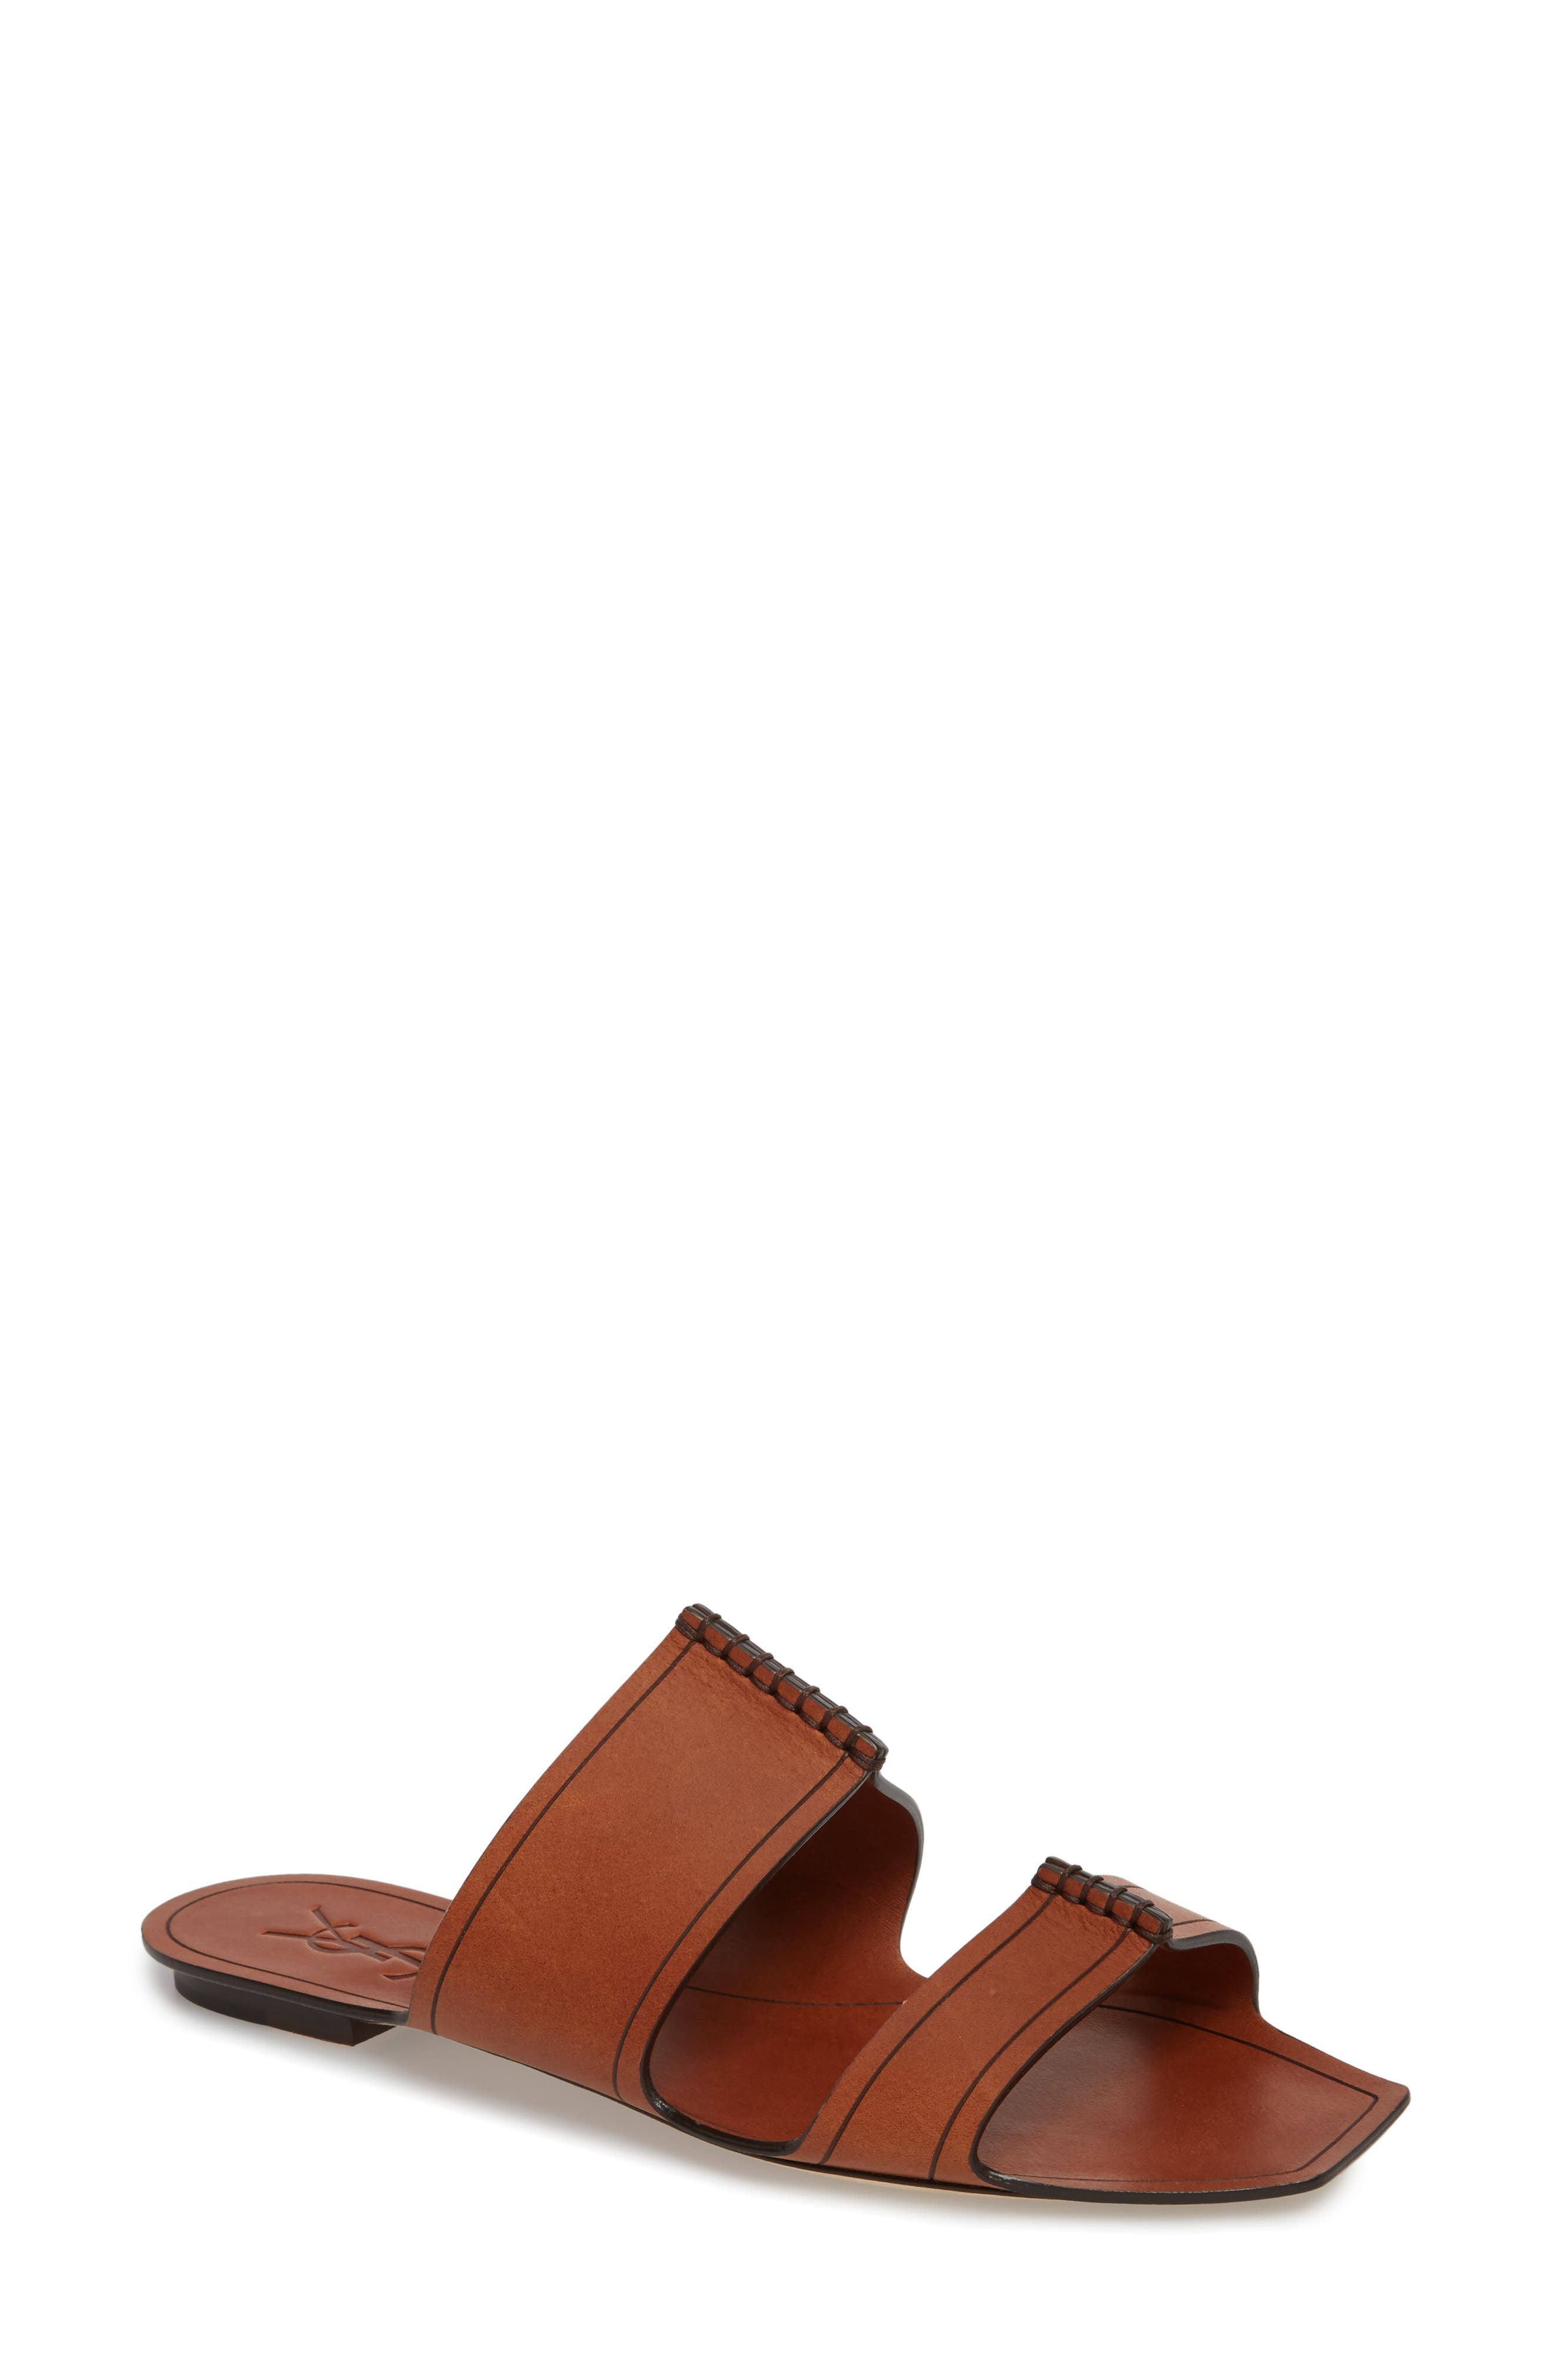 Double Band Slide Sandal,                             Main thumbnail 1, color,                             200